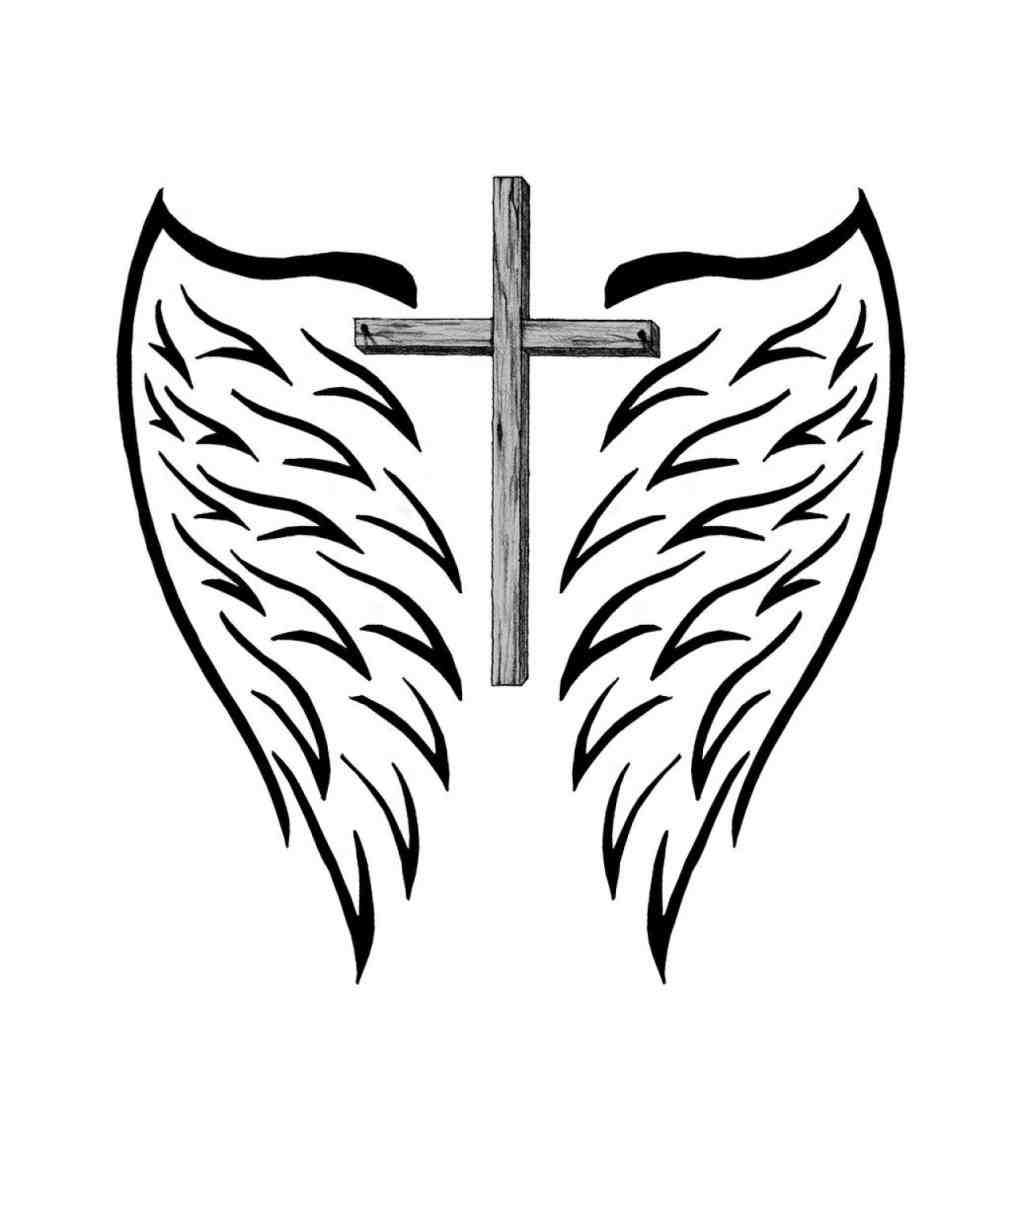 coloring cross with wing cross with wings coloring pages part 3 free resource with wing coloring cross